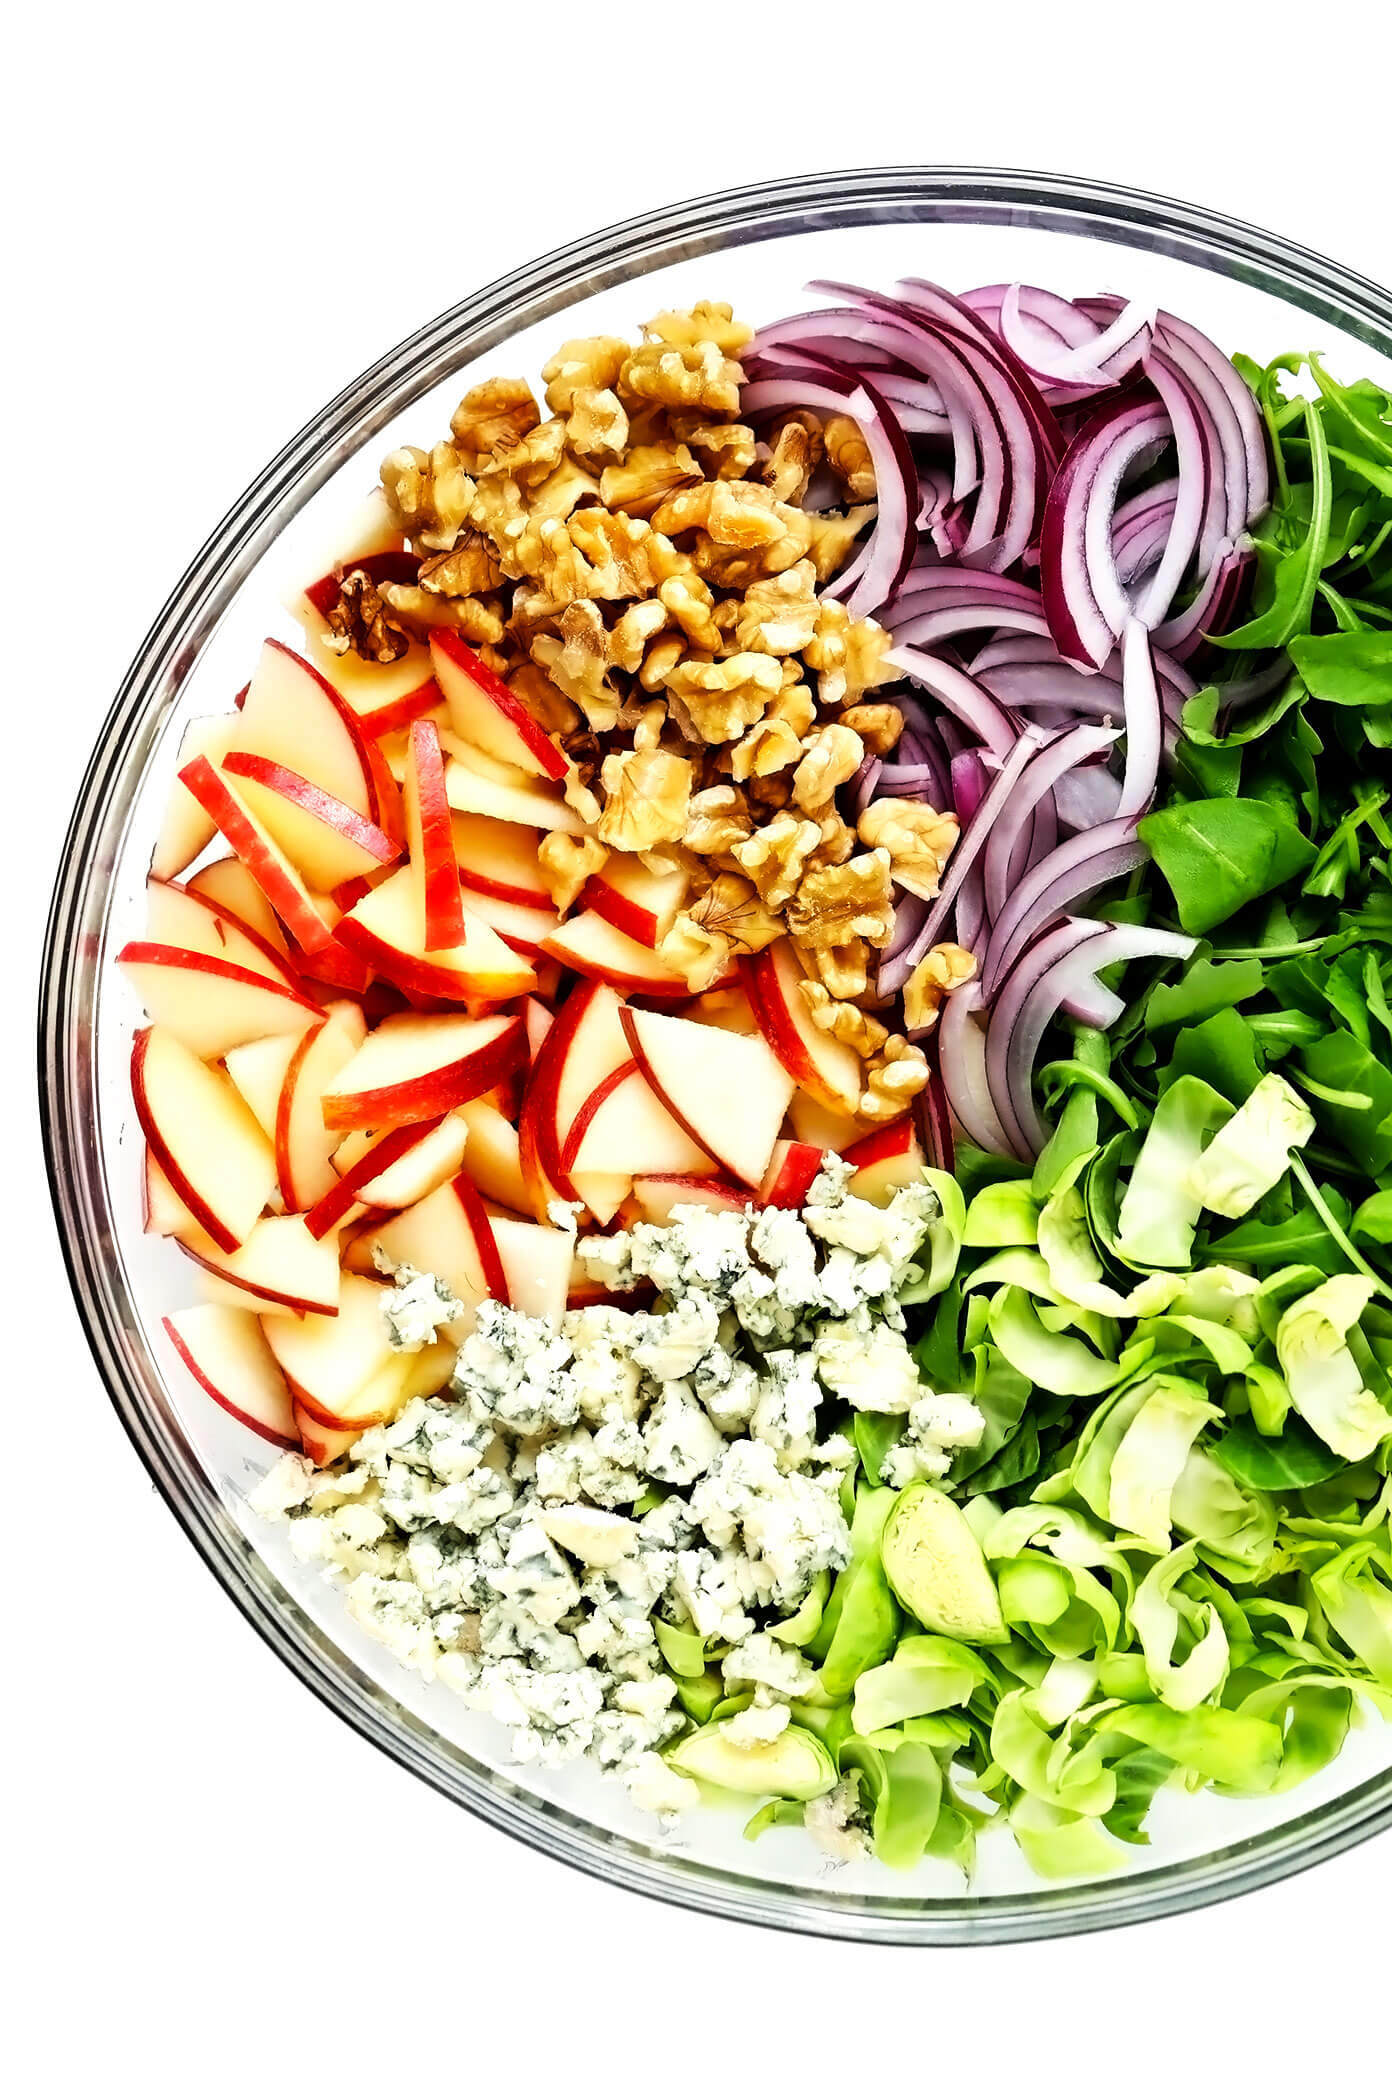 Bowl with Apples, Walnuts, Red Onion, Arugula, Shredded Brussels and Blue Cheese